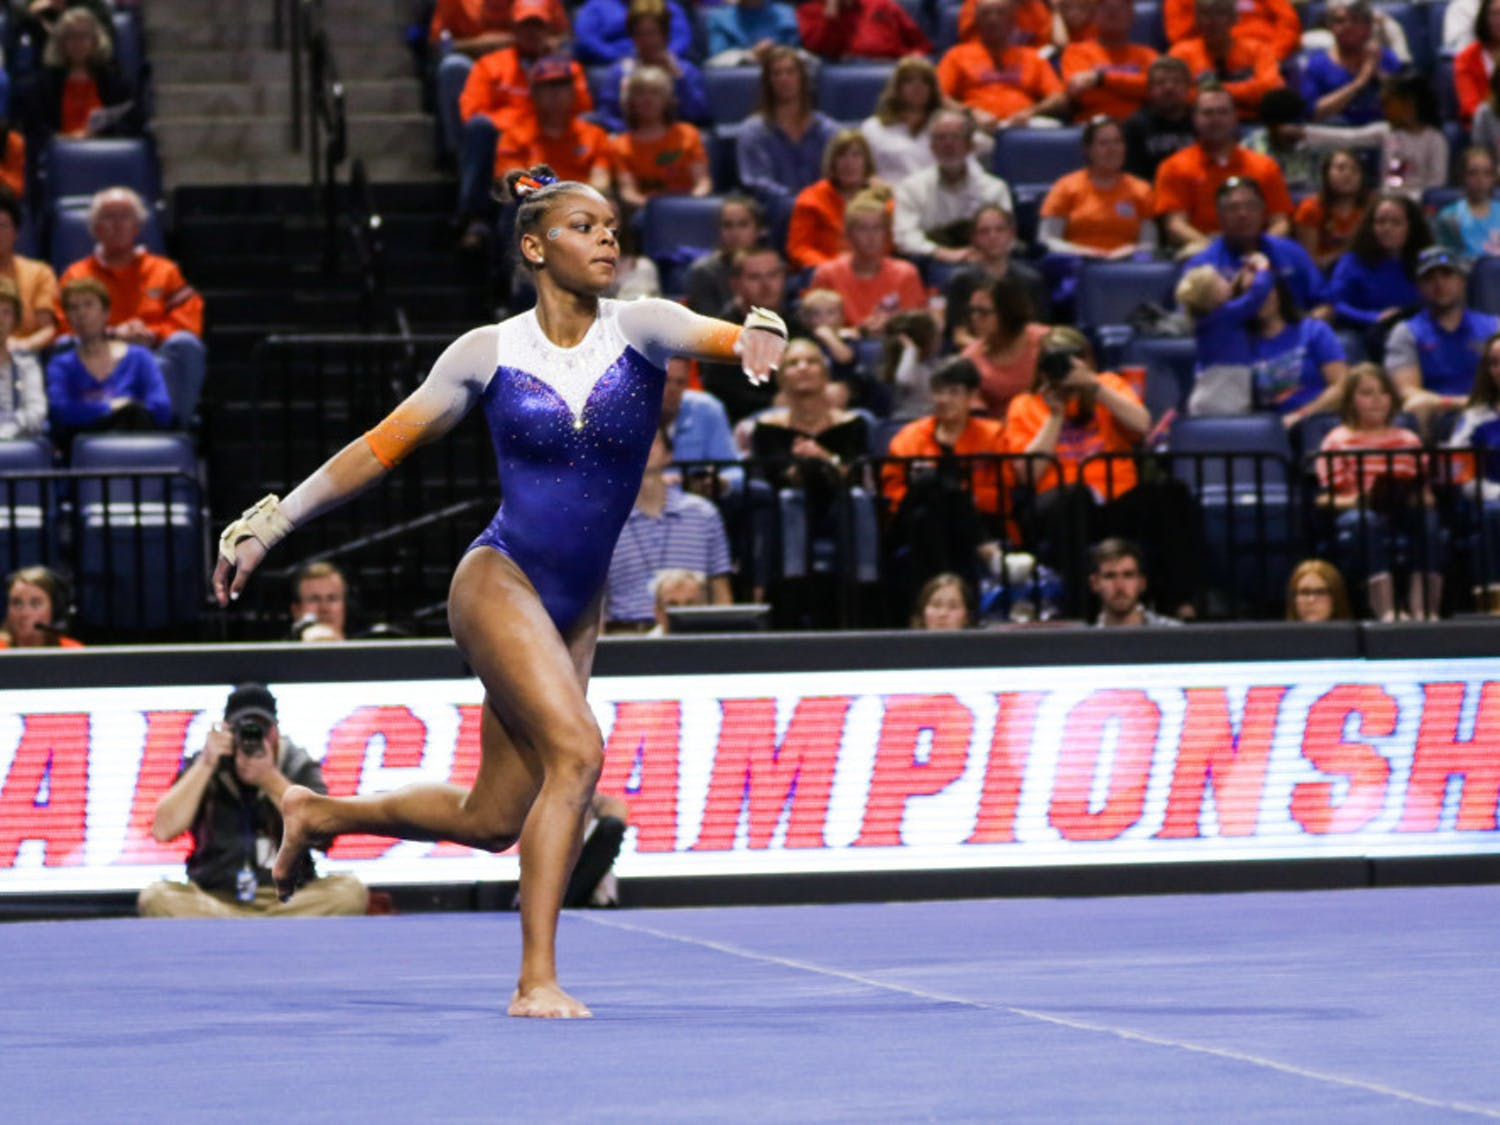 UF freshman Trinity Thomas won the vault title at the SEC Championships on Saturday in New Orleans.